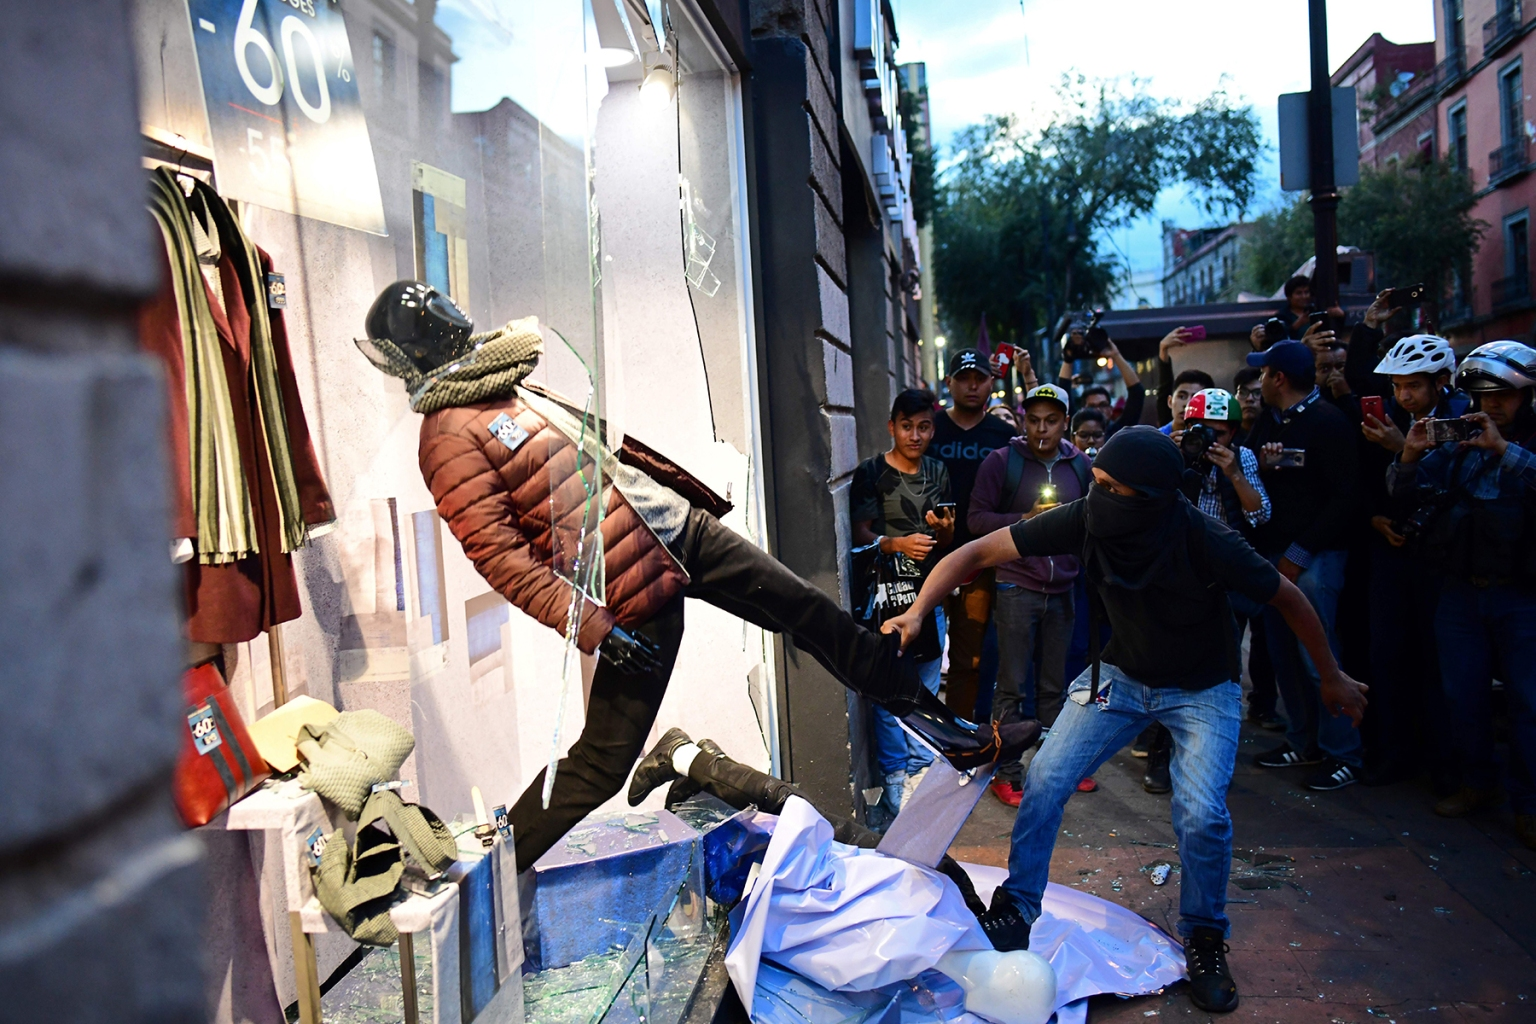 Hooded demonstrators vandalize a shop window in Mexico City on the 50th anniversary of the 1968 Tlatelolco student massacre on Oct. 2. Mexican troops opened fire on student demonstrators, killing hundreds just days before Mexico City hosted the 1968 Olympics—one of the darkest episodes in a year of global turbulence. RONALDO SCHEMIDT/AFP/Getty Images